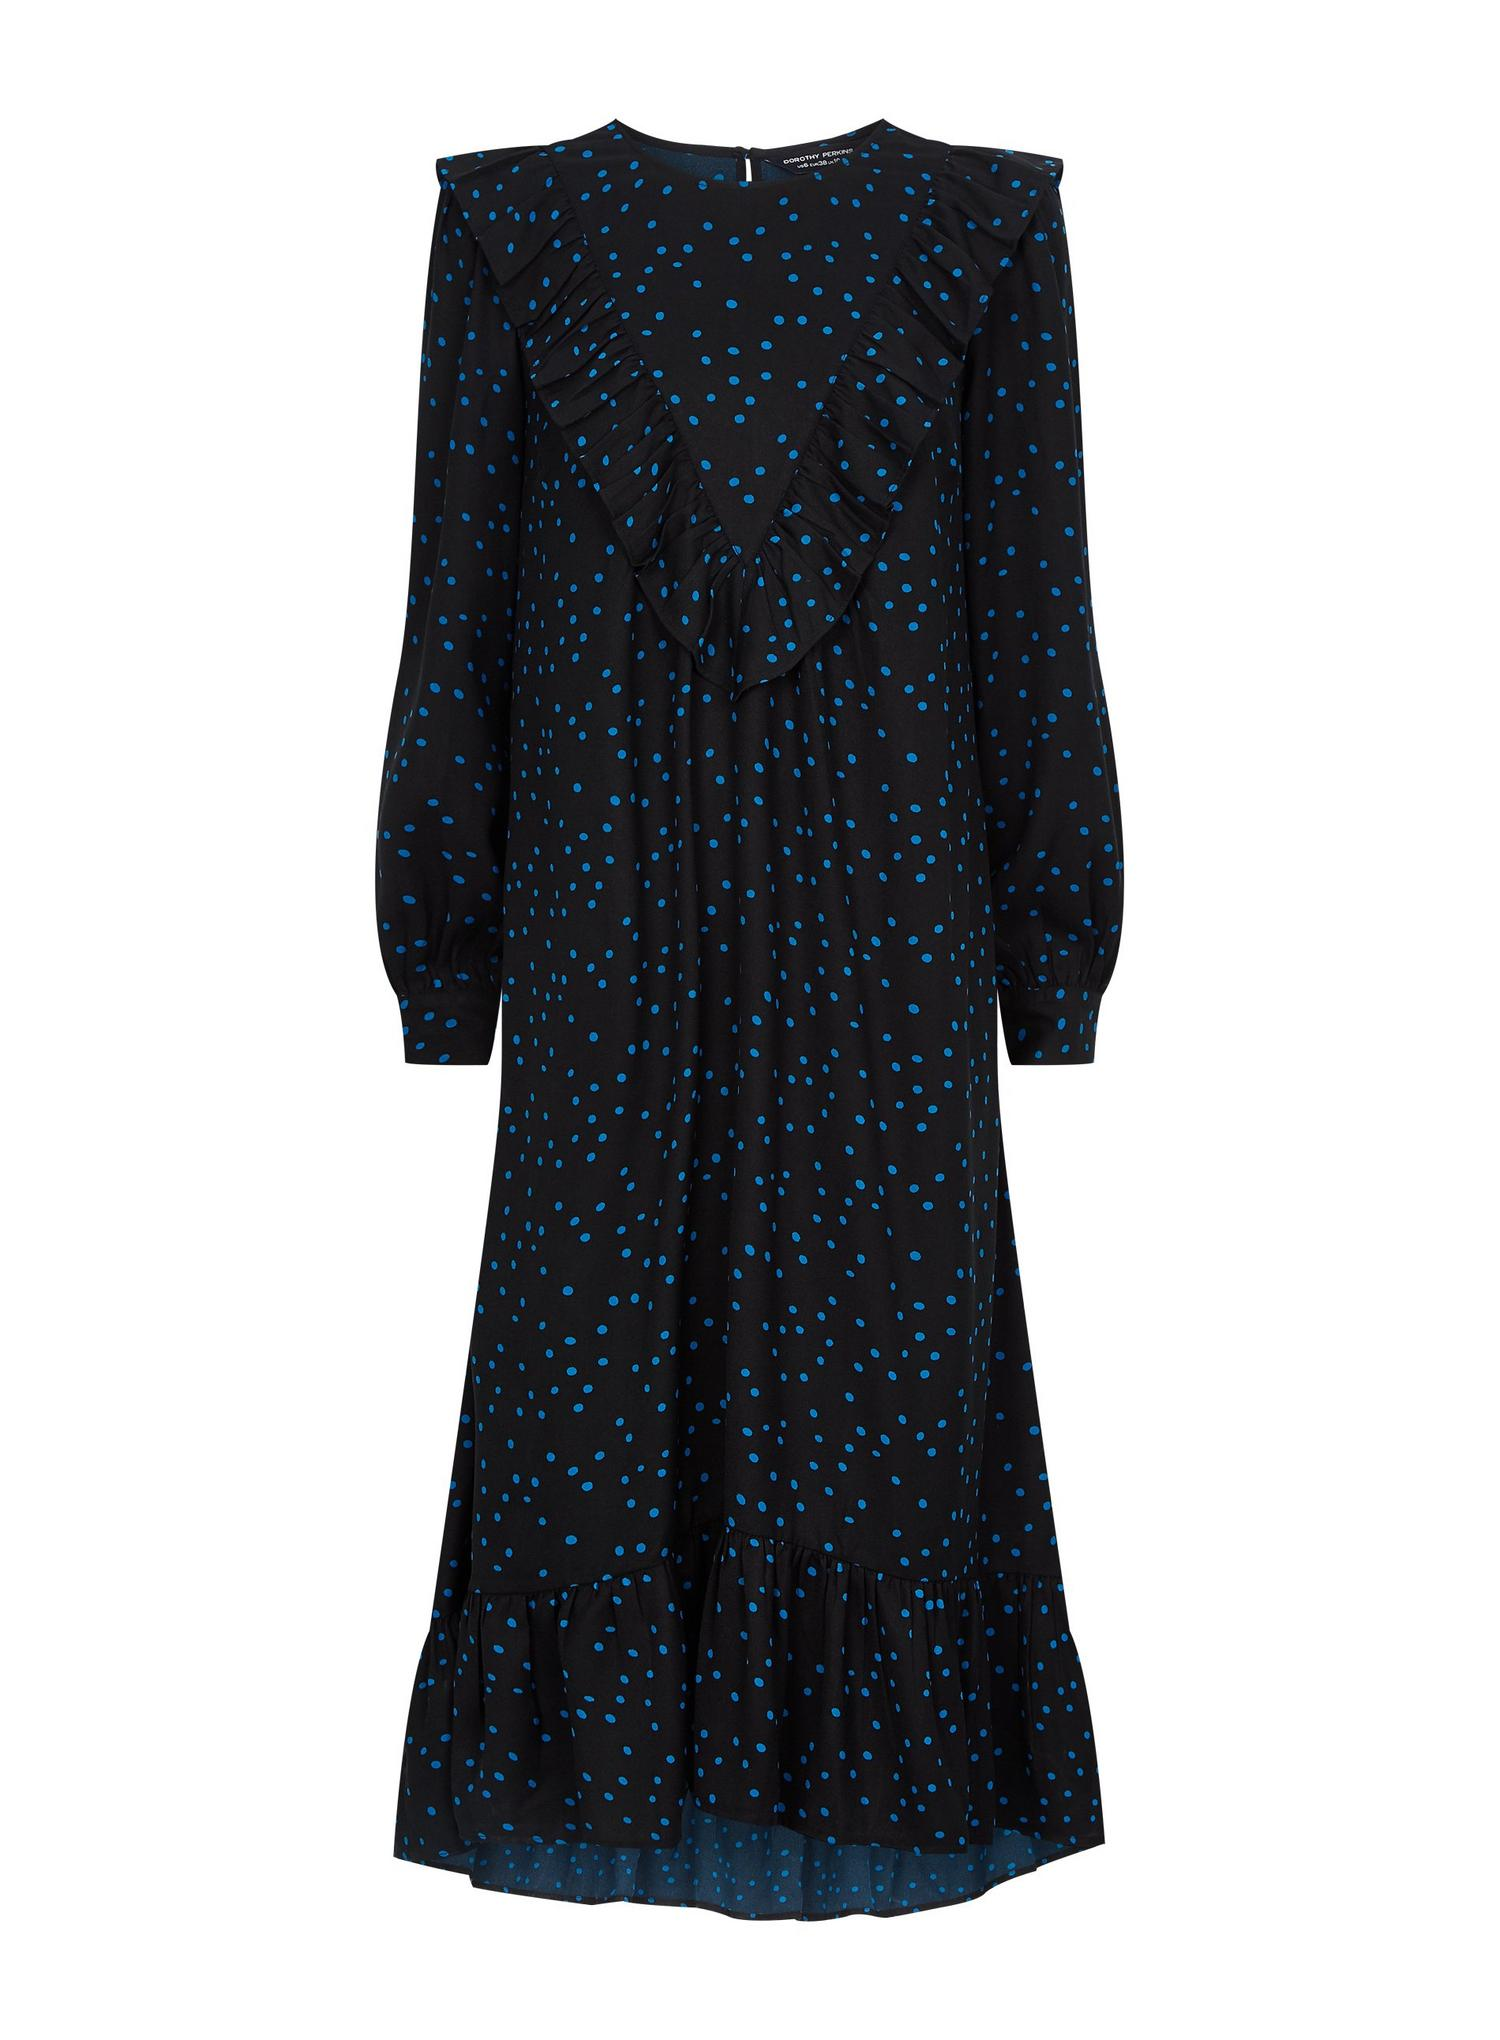 105 Black Spot print Frill Midi Dress image number 2